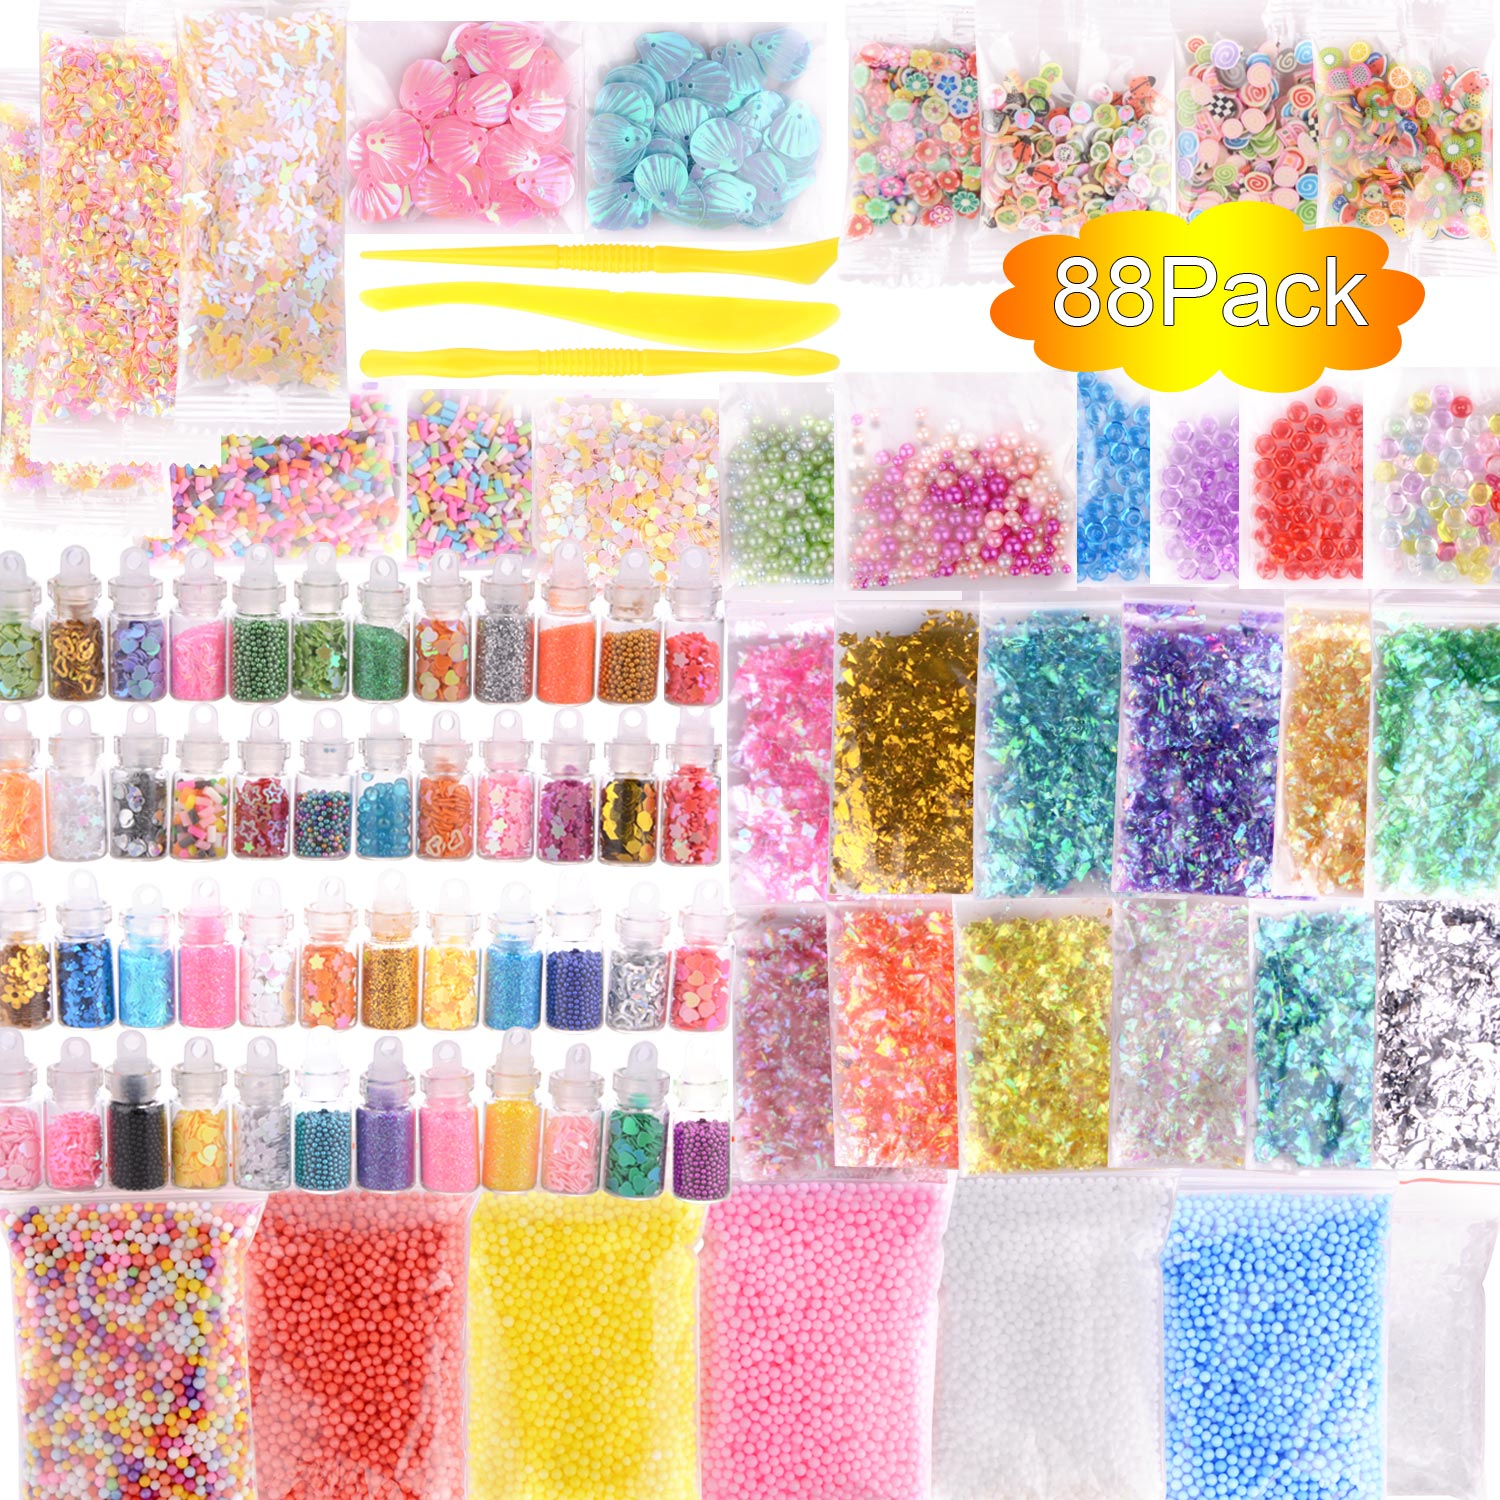 88 Pack Slime Making Kit Styrofoam Foam Balls Beads Charms Glitter Jars Containers Slime for DIY Craft Homemade Party Supply88 Pack Slime Making Kit Styrofoam Foam Balls Beads Charms Glitter Jars Containers Slime for DIY Craft Homemade Party Supply